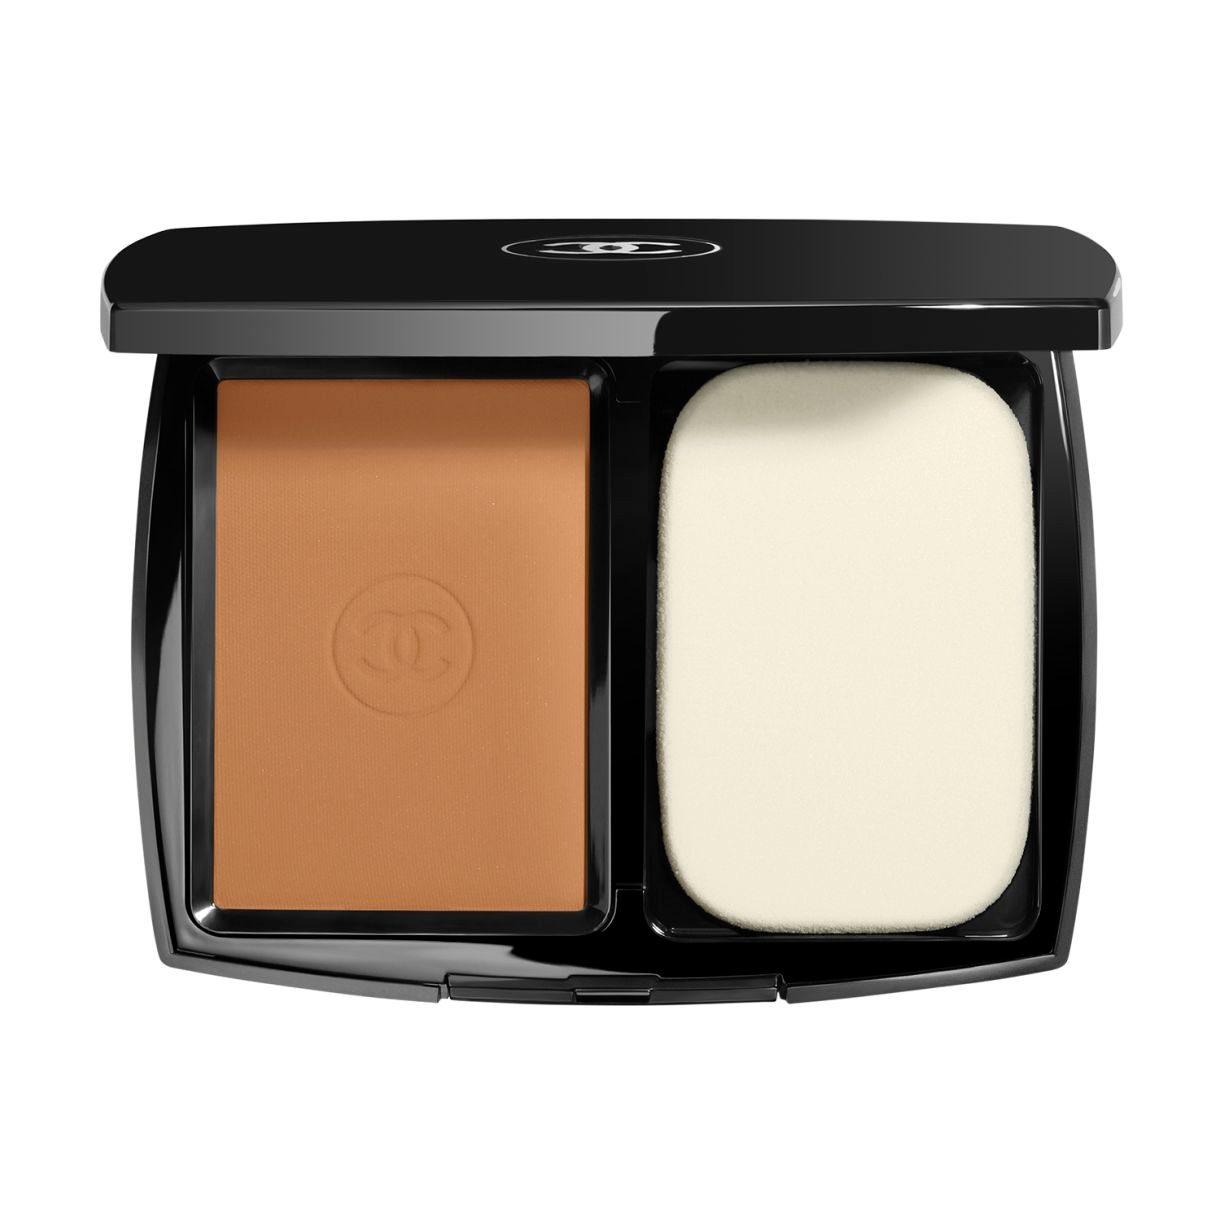 LE TEINT ULTRA TENUE ULTRAWEAR FLAWLESS COMPACT FOUNDATION 121 - CARAMEL